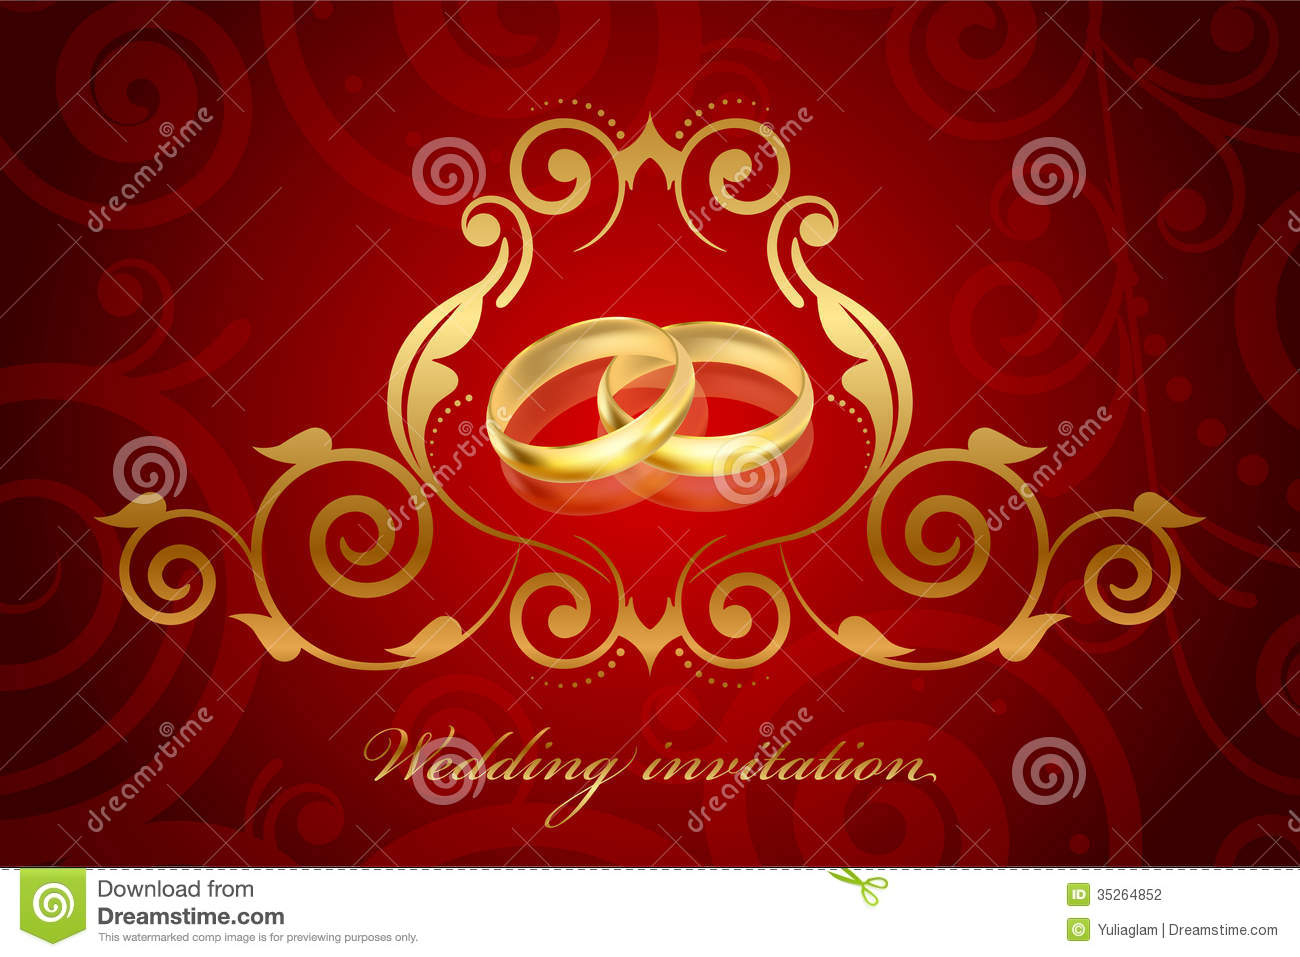 Red And Gold Wedding Invitation Stock Vector - Illustration of frame ...